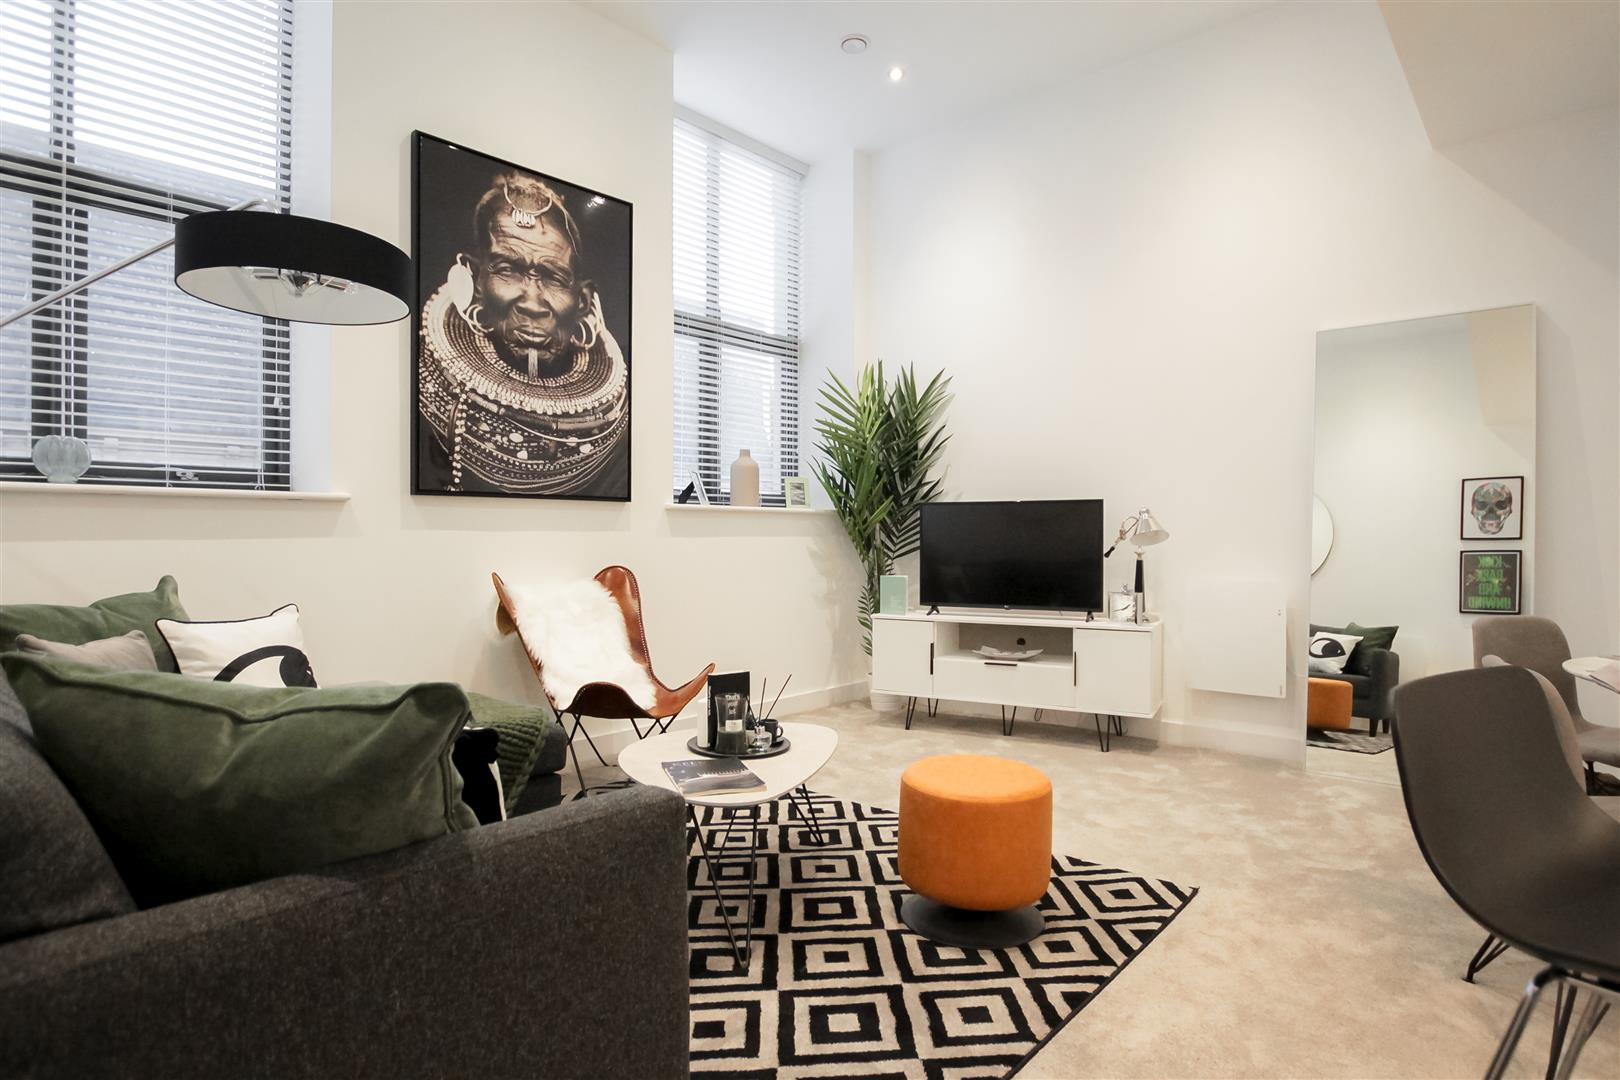 2 Bedroom Apartment For Sale - IMG_2070 copy.jpg